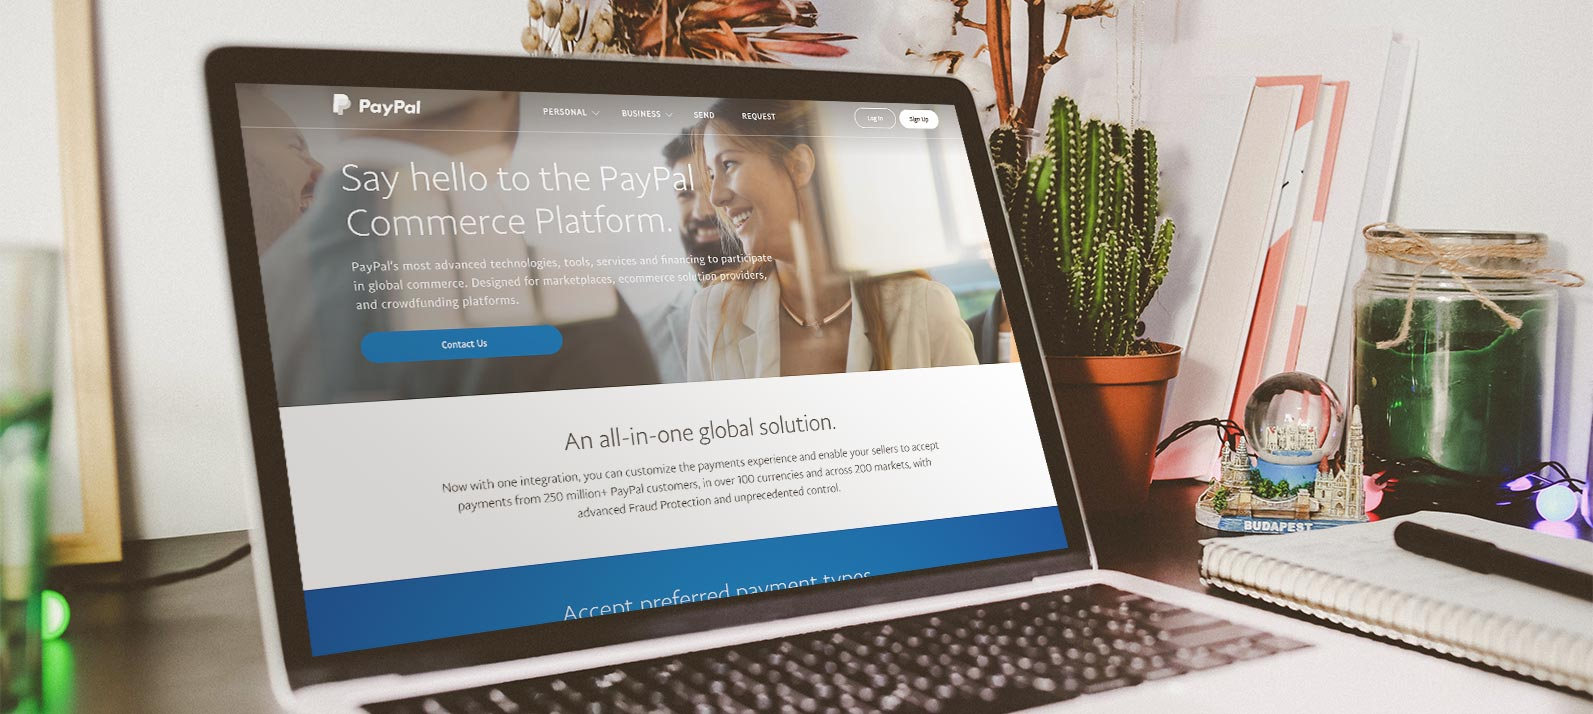 What is PayPal Commerce Platform?